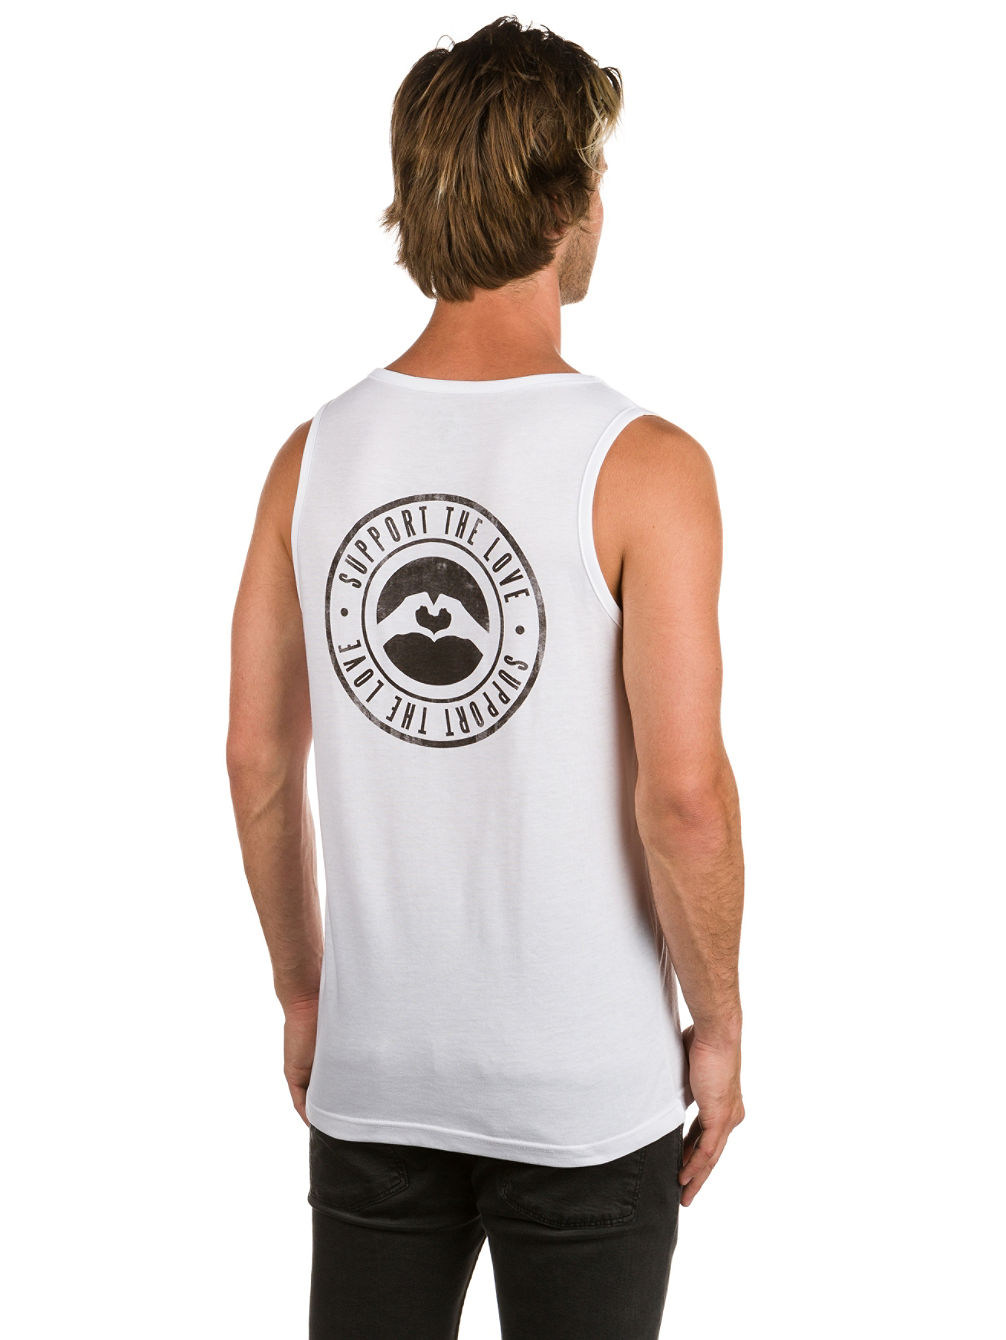 Stamped Logo Hip Tank Top